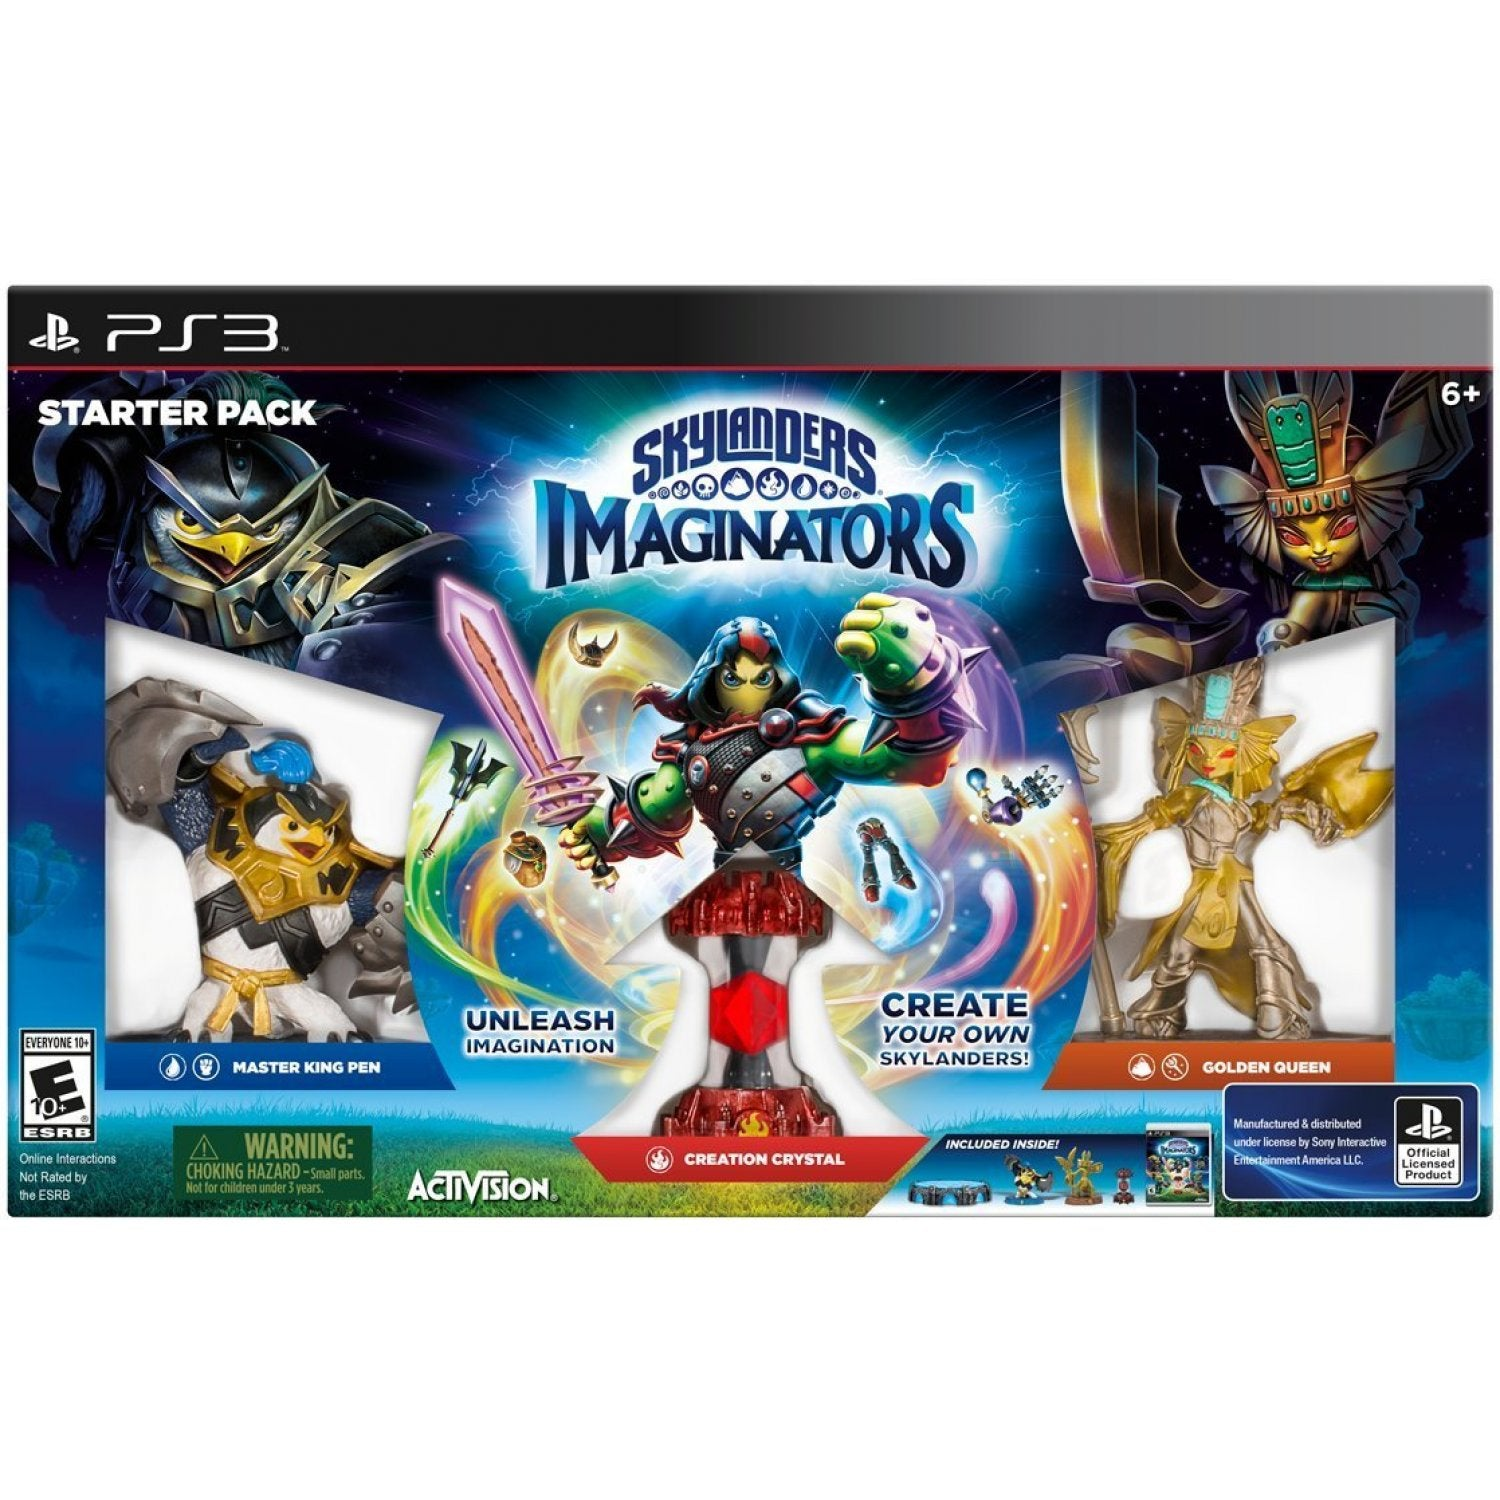 PS3 Skylanders Imaginators (Starter Pack)